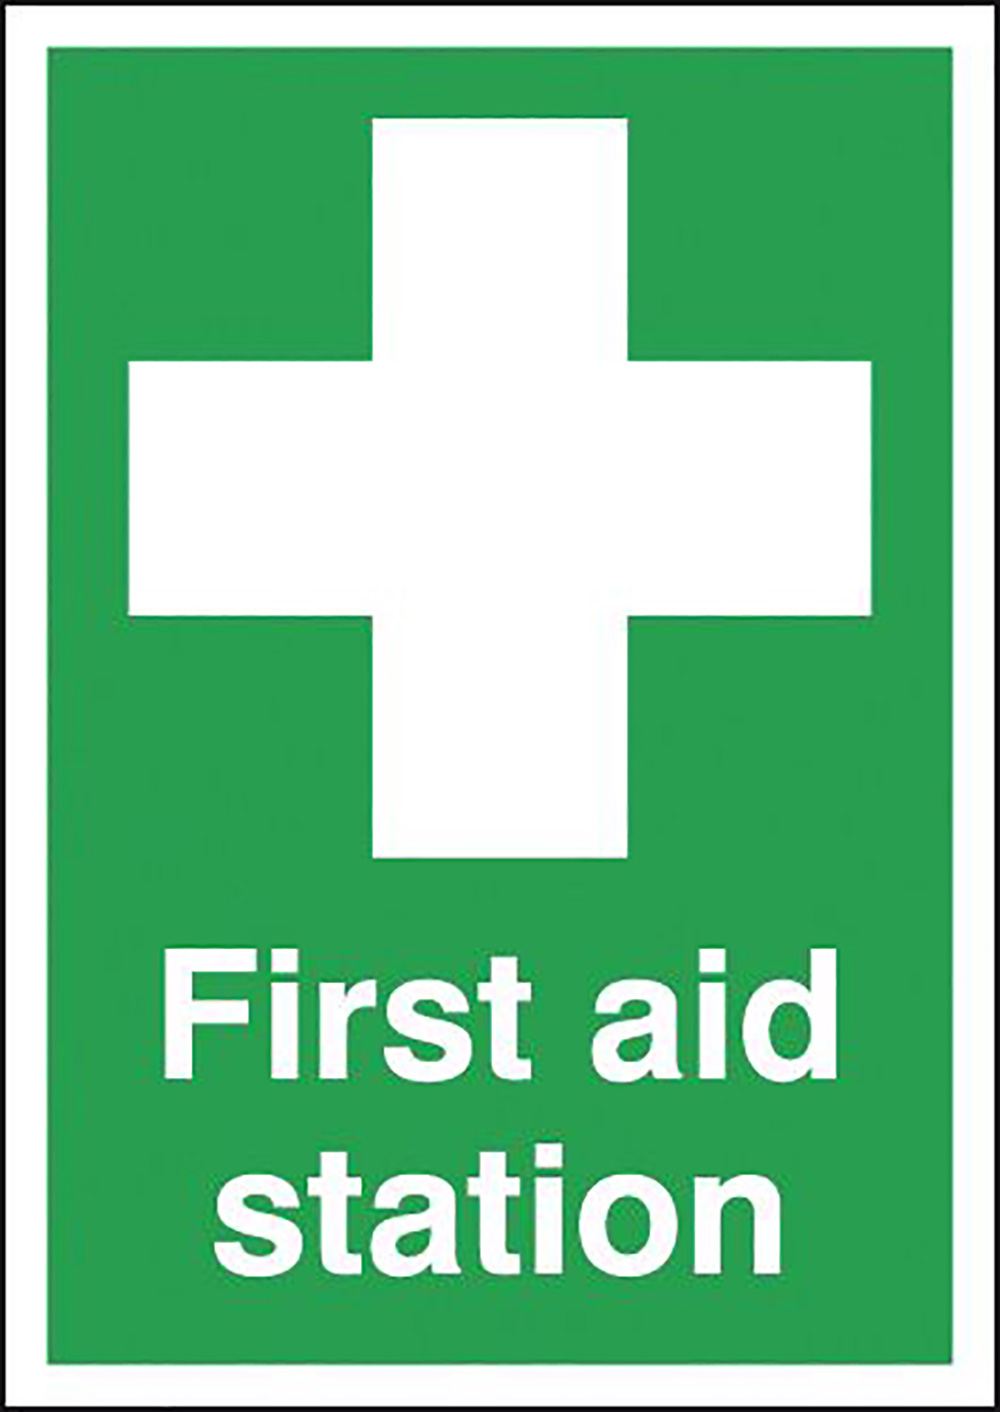 First Aid Station 297x210mm 1.2mm Rigid Plastic Safety Sign